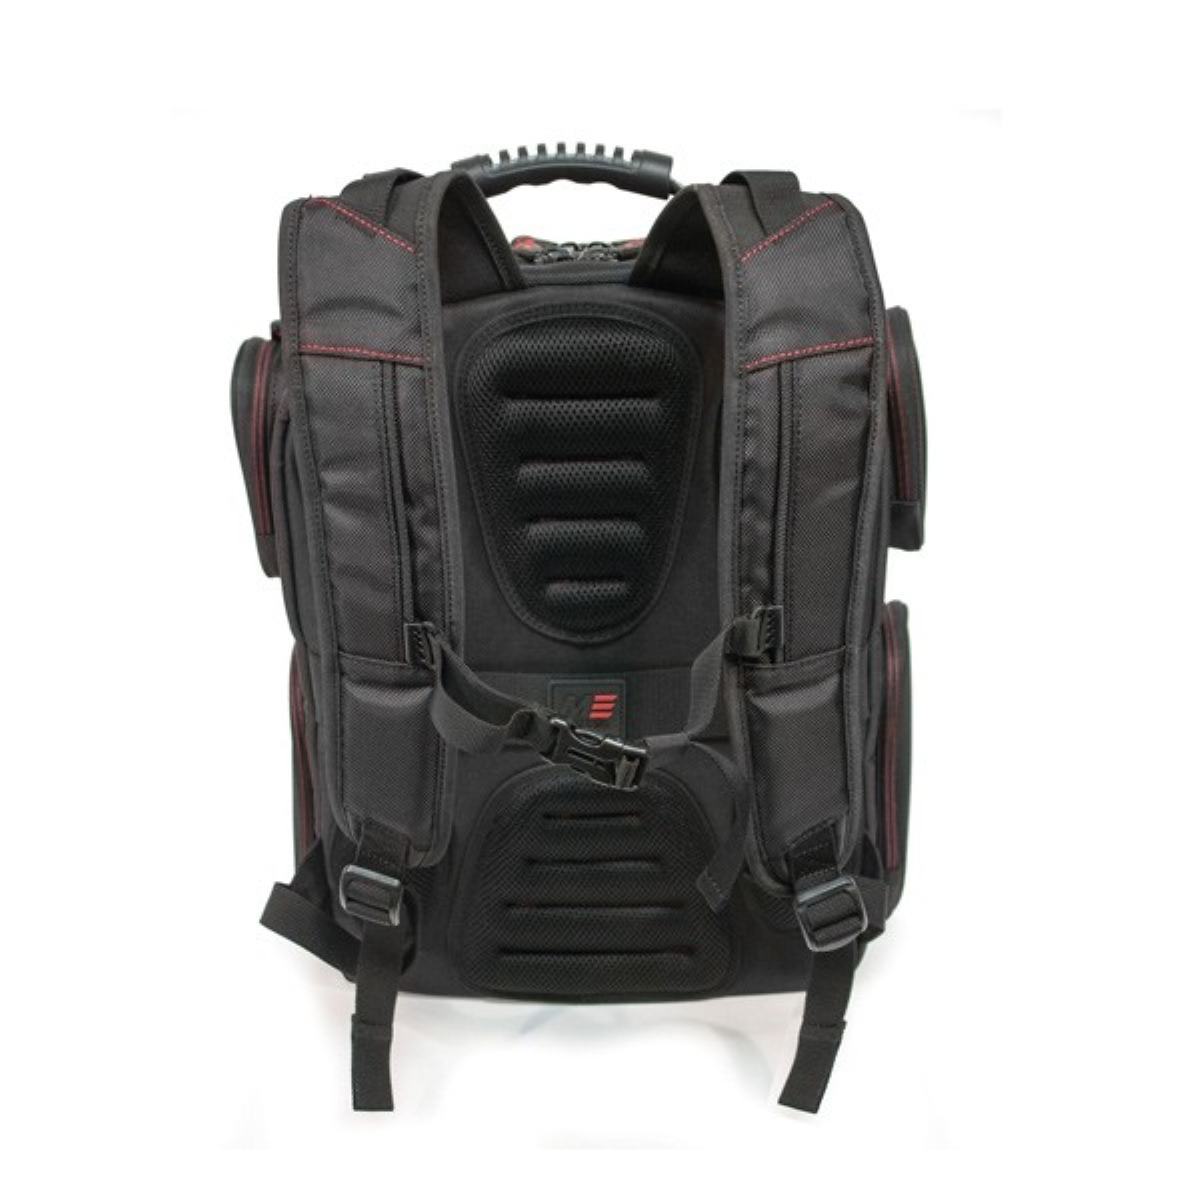 Padded Air-Mesh Shoulder Straps and Back panel